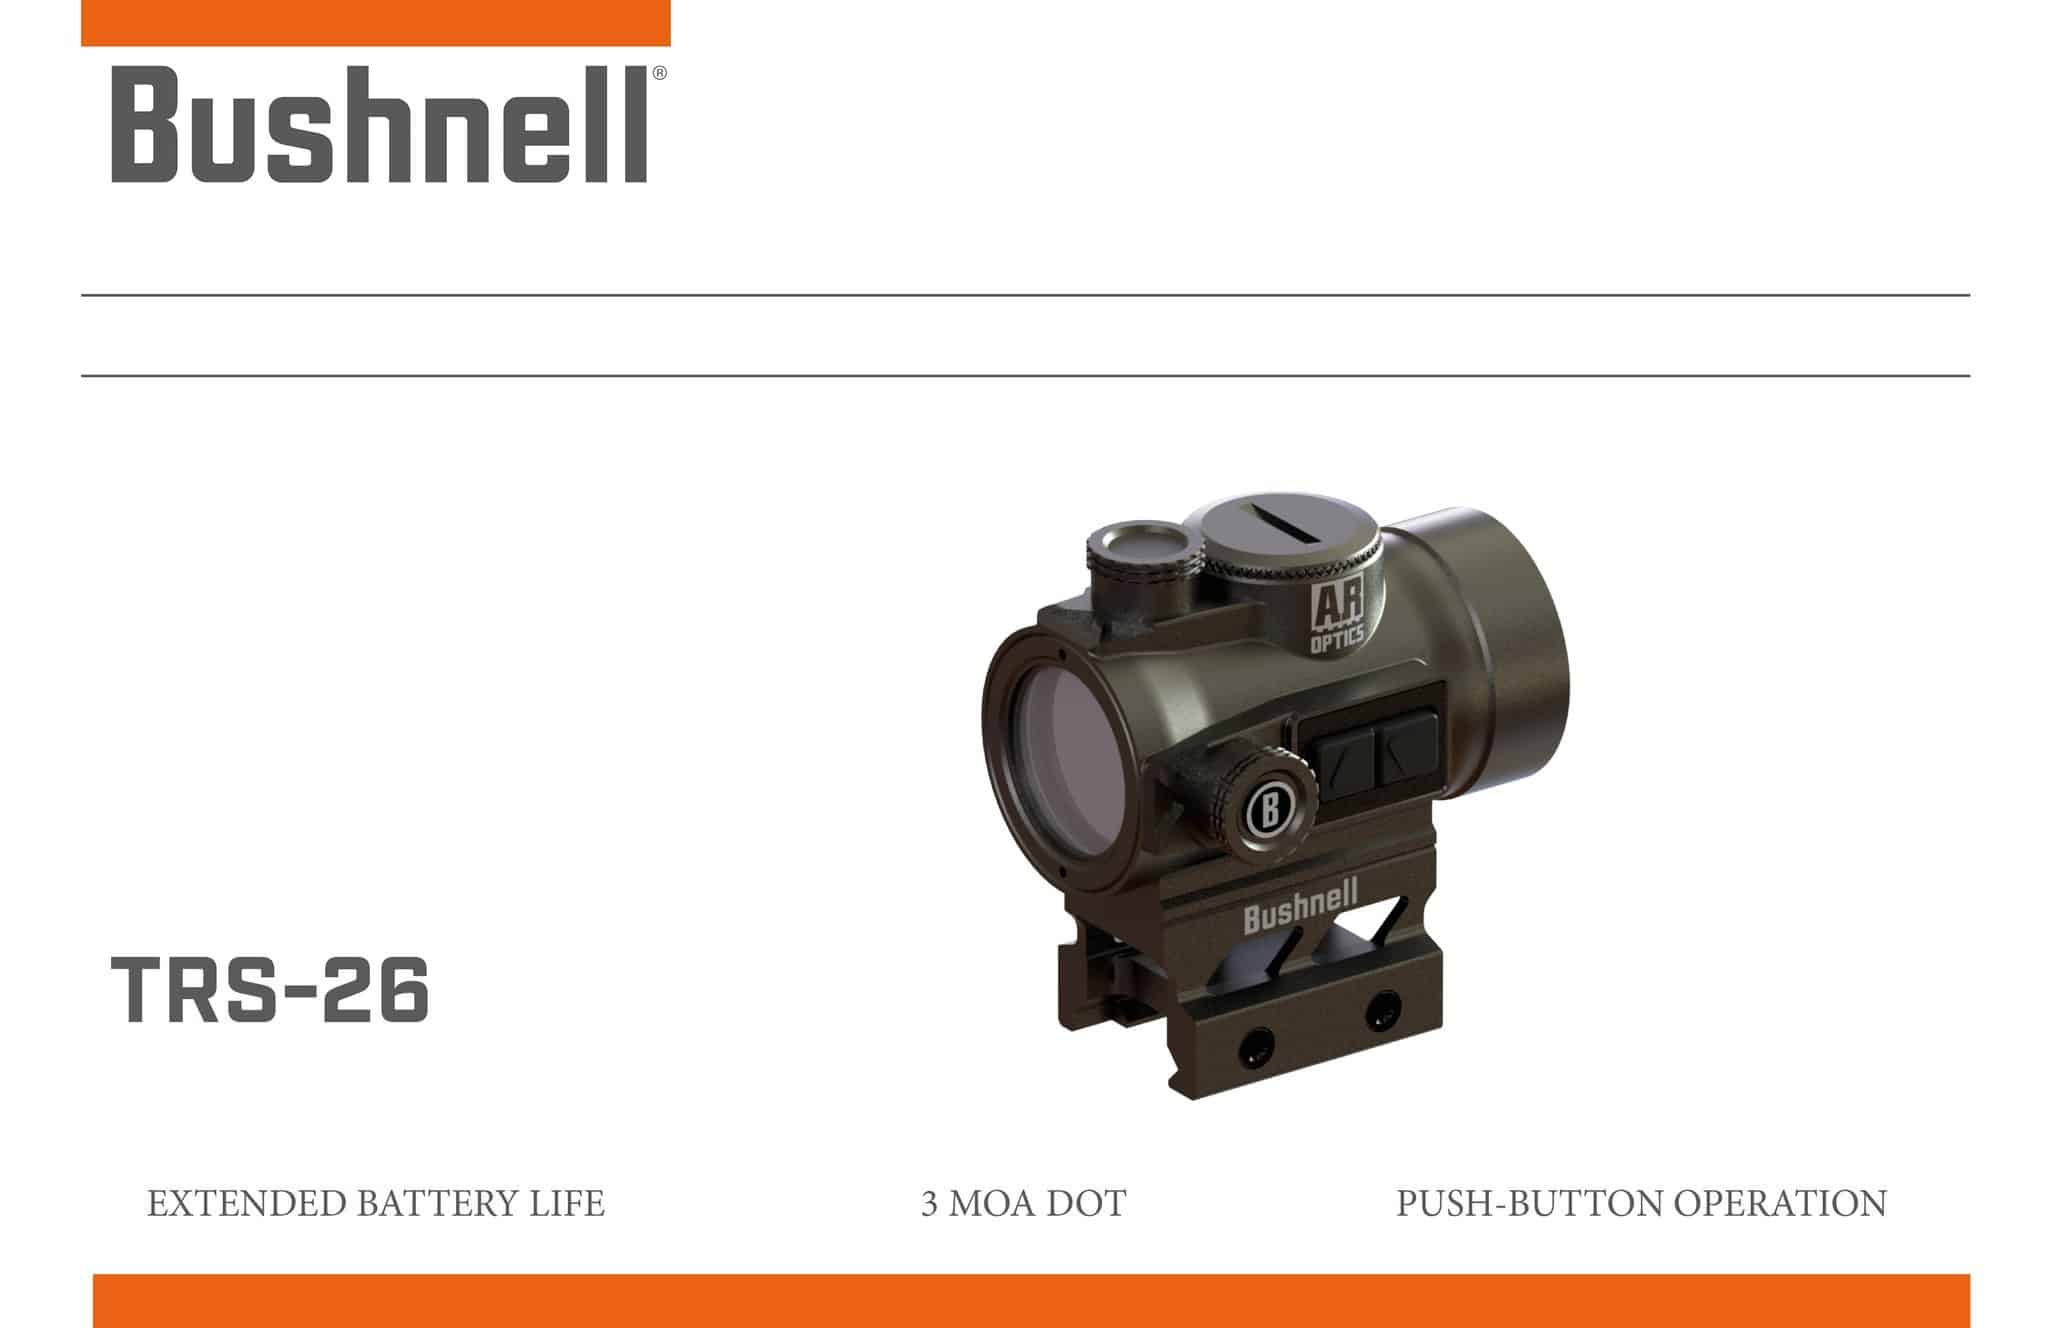 Bushnell TRS-26 Red Dot Sight